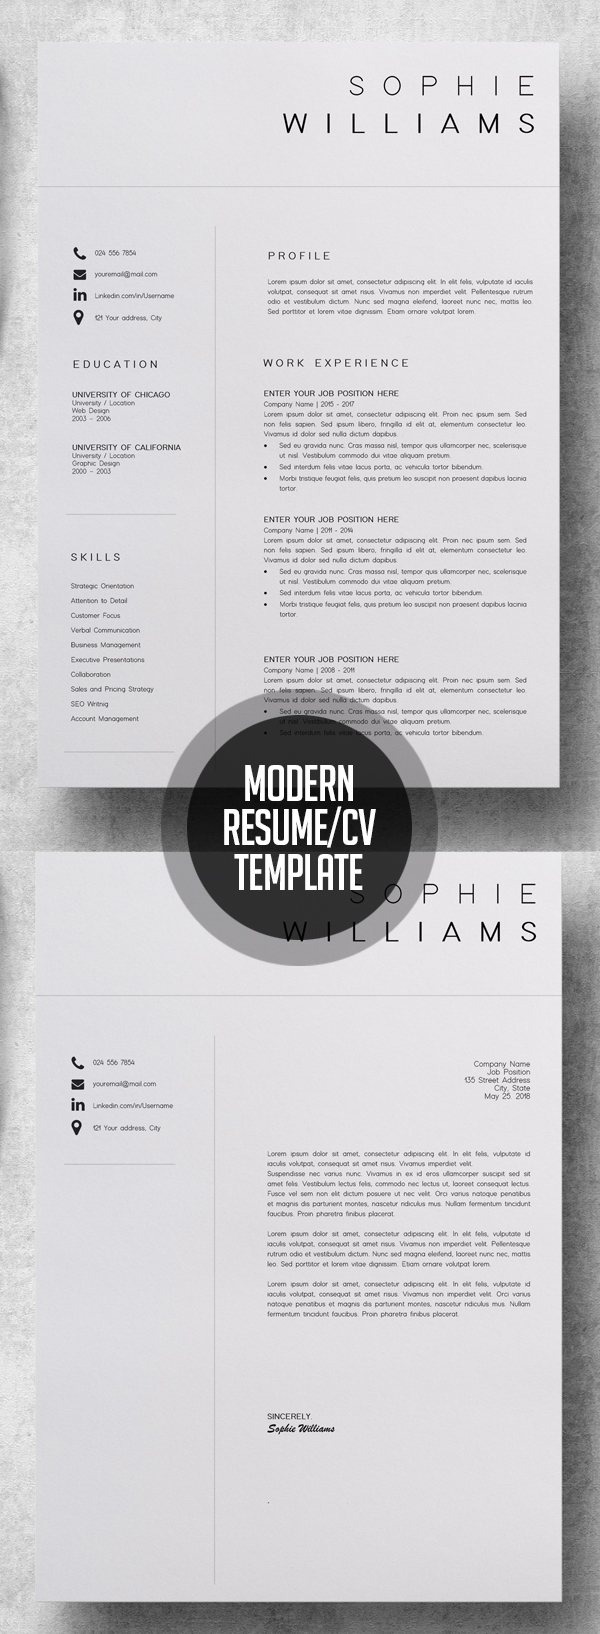 Modern Resume Template and CV Template #resumedesign